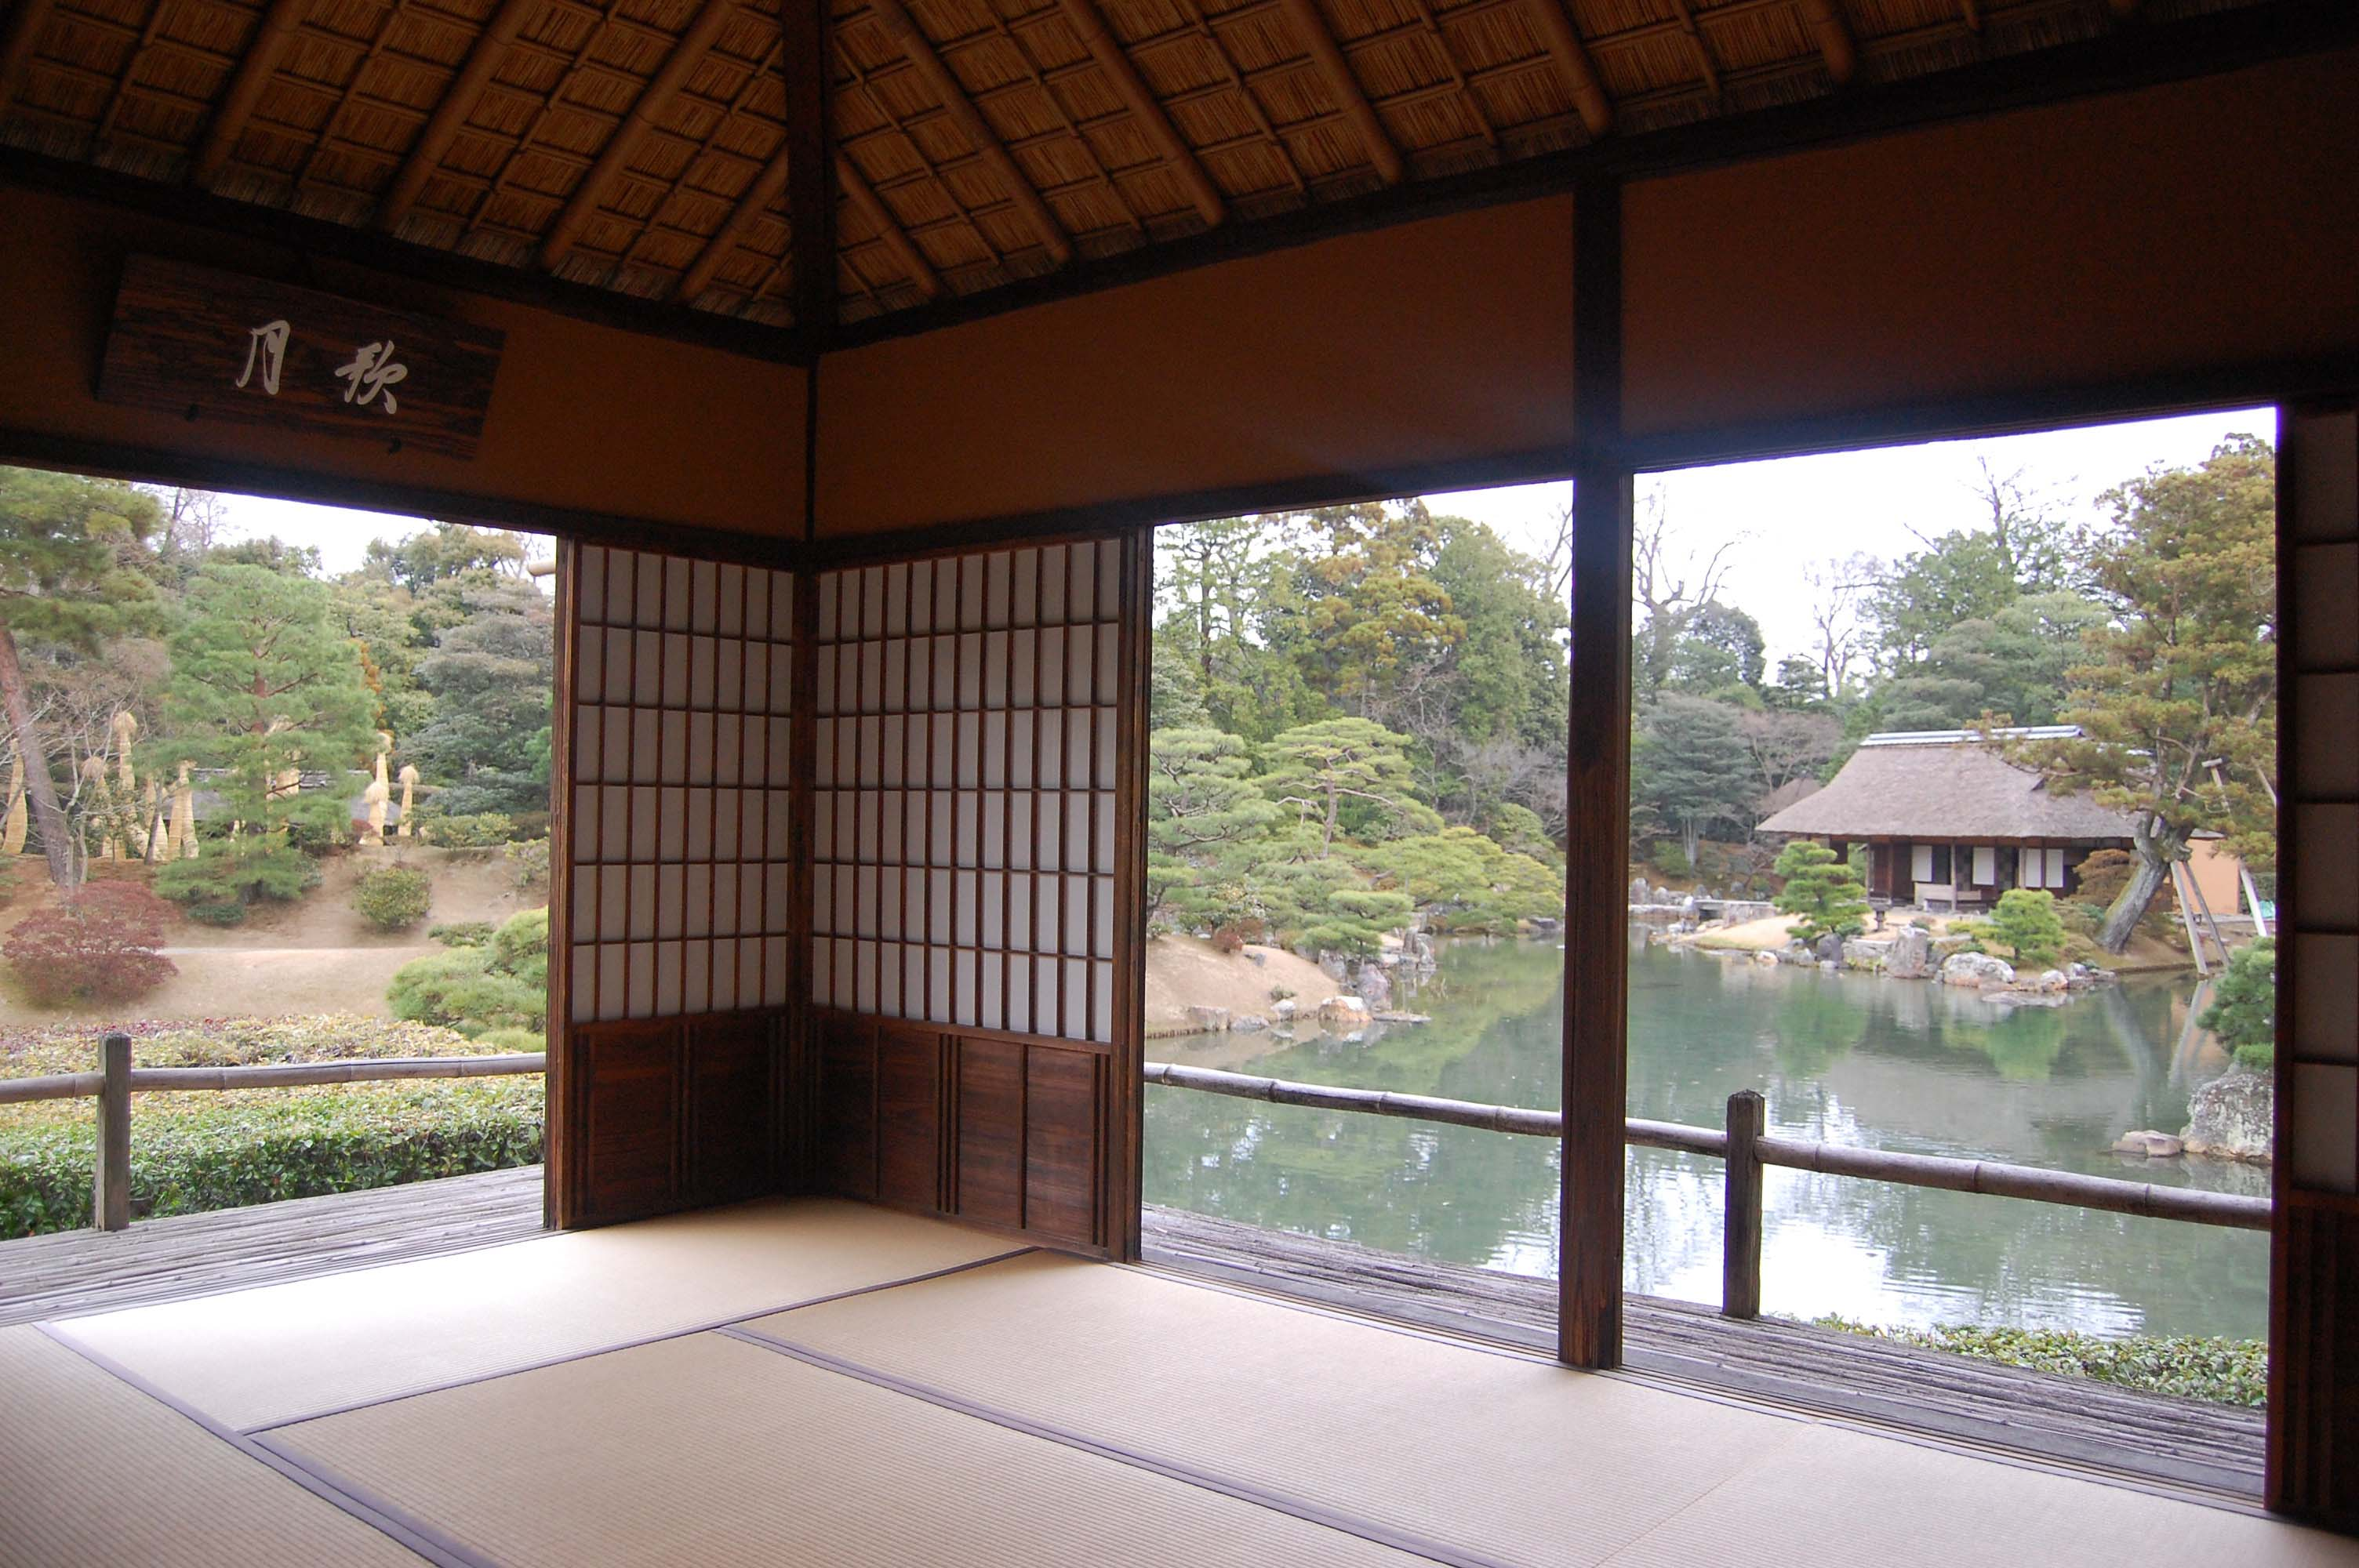 katsura imperial villa in kyoto attraction in kyoto japan justgola. Black Bedroom Furniture Sets. Home Design Ideas